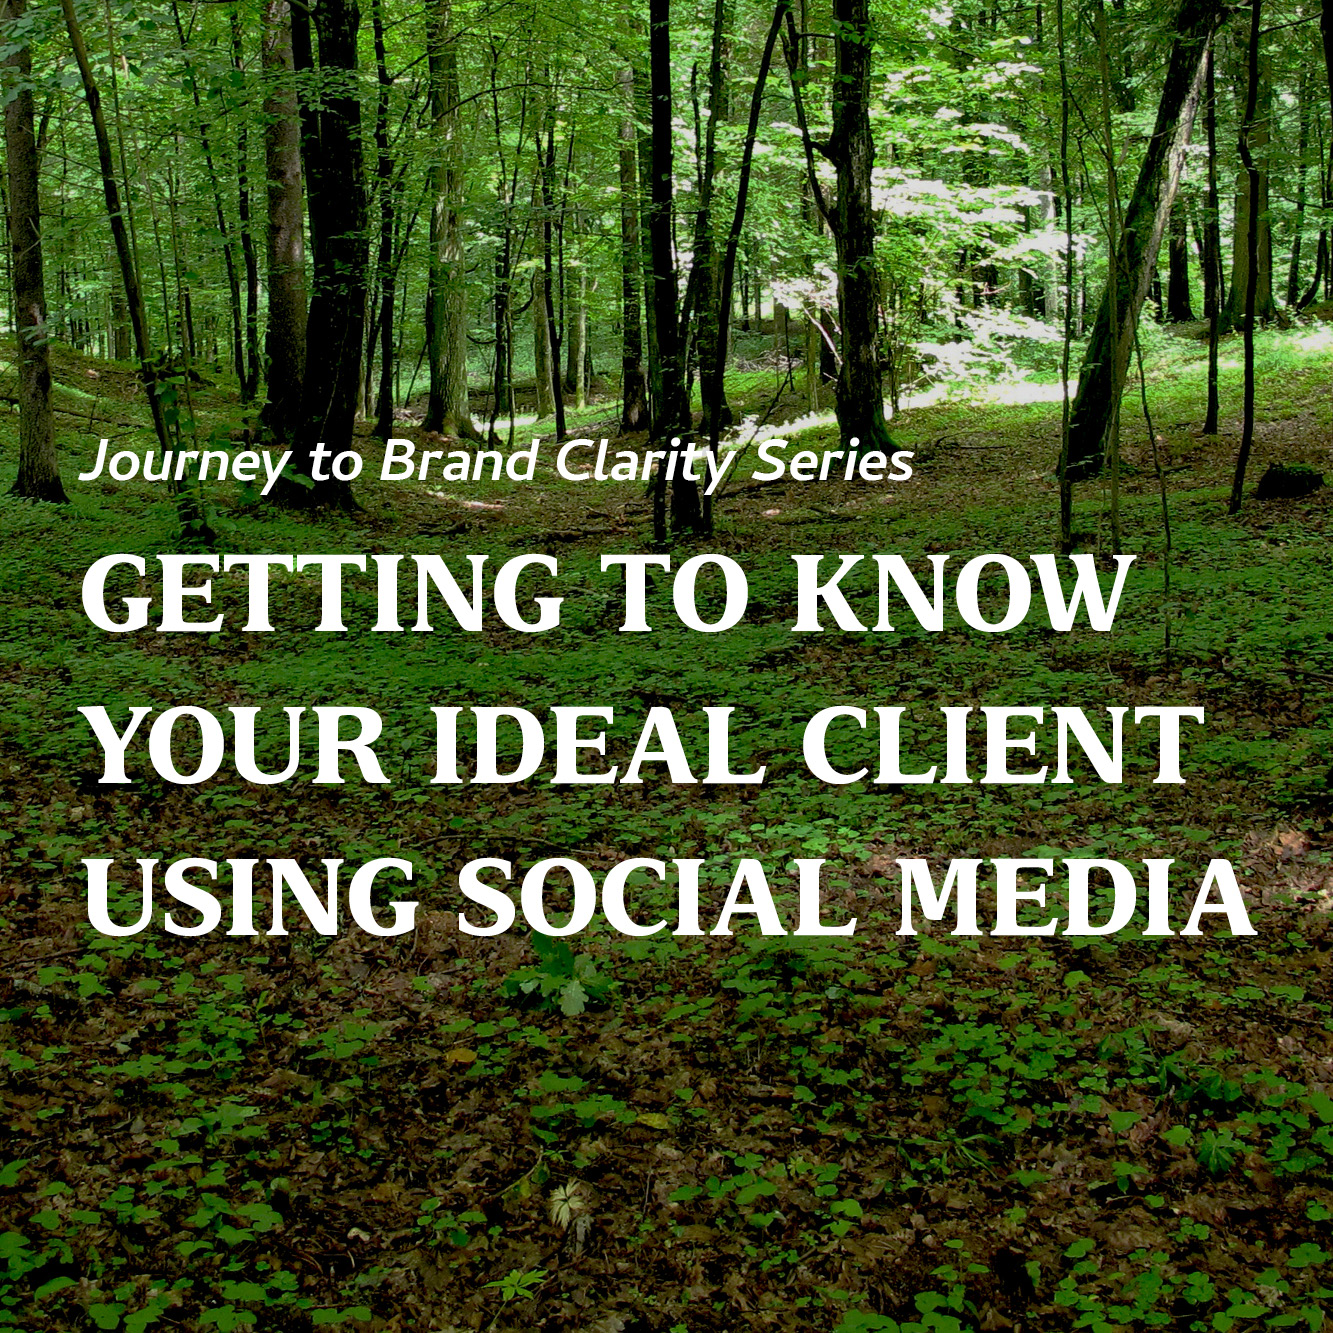 Getting to Know your Ideal Client Using Social Media